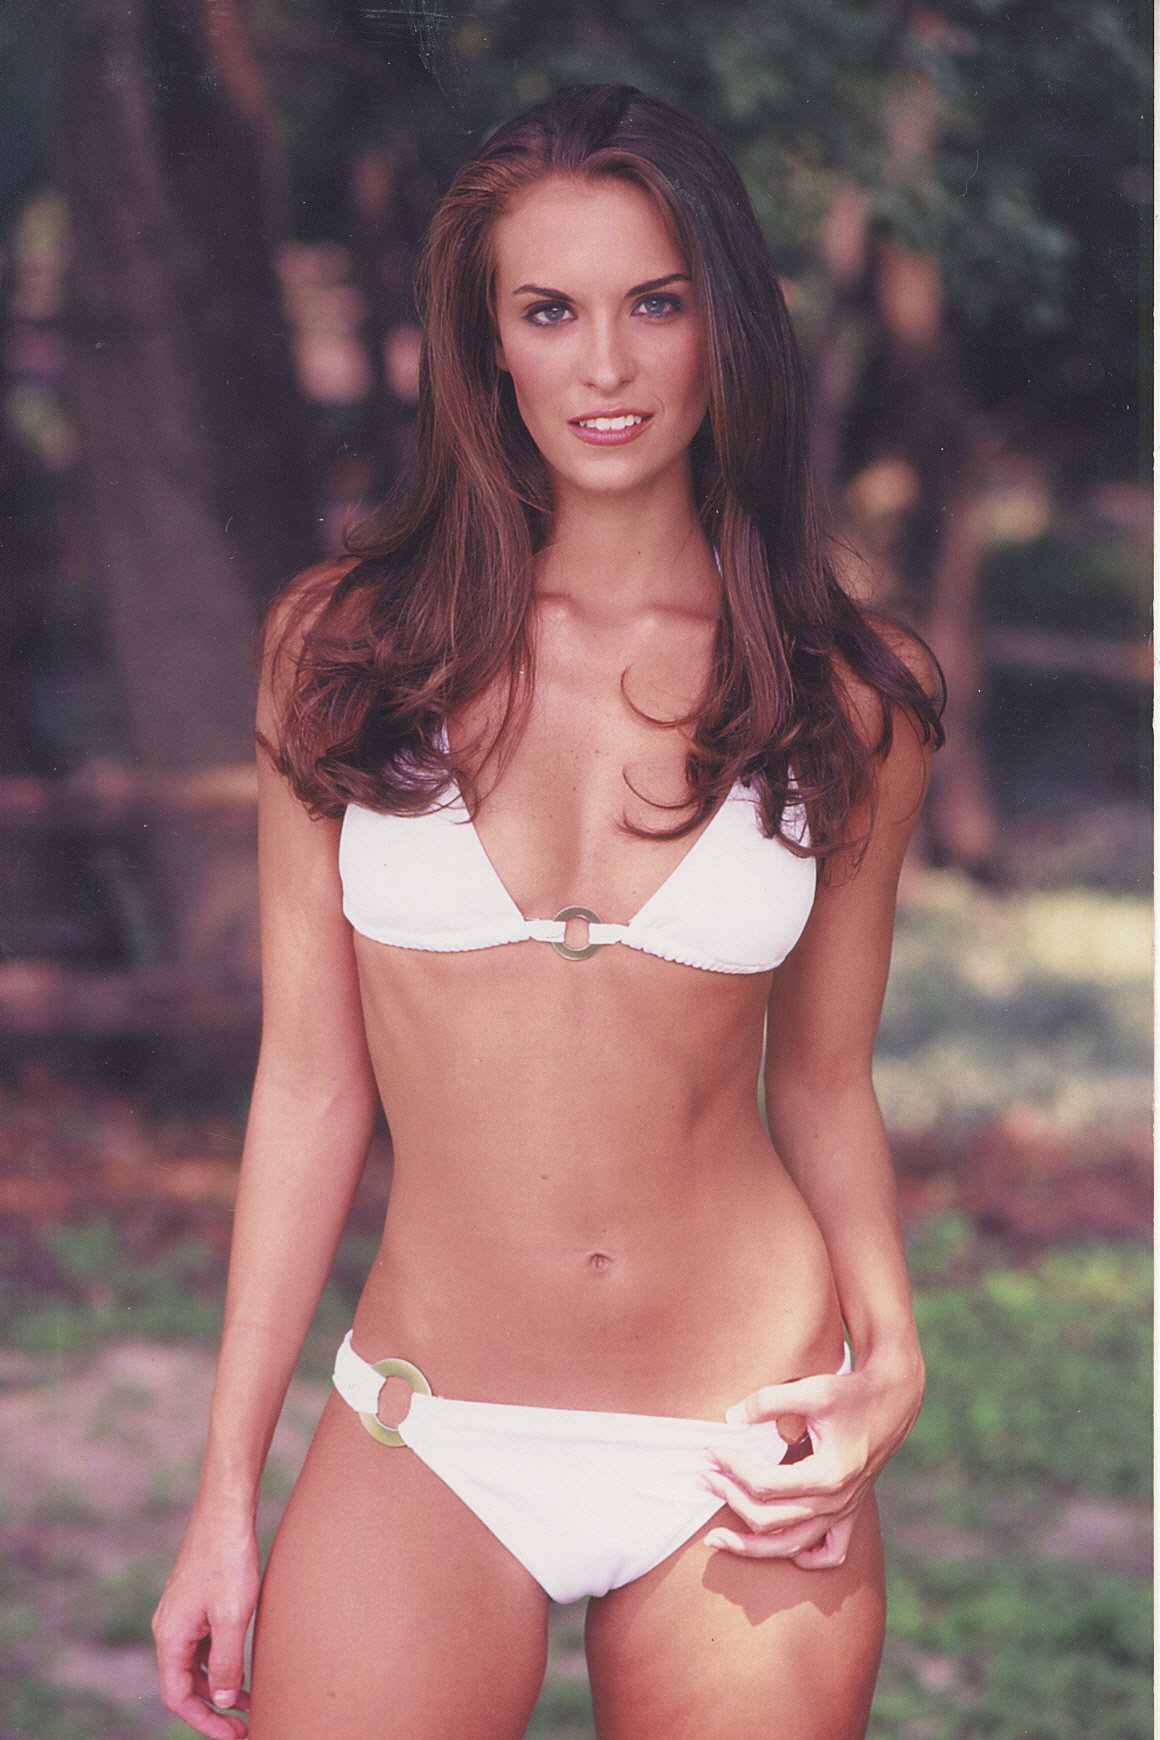 MISS SC-USA-   JAMIE HILL  She was TOP 15 at MISS USA.